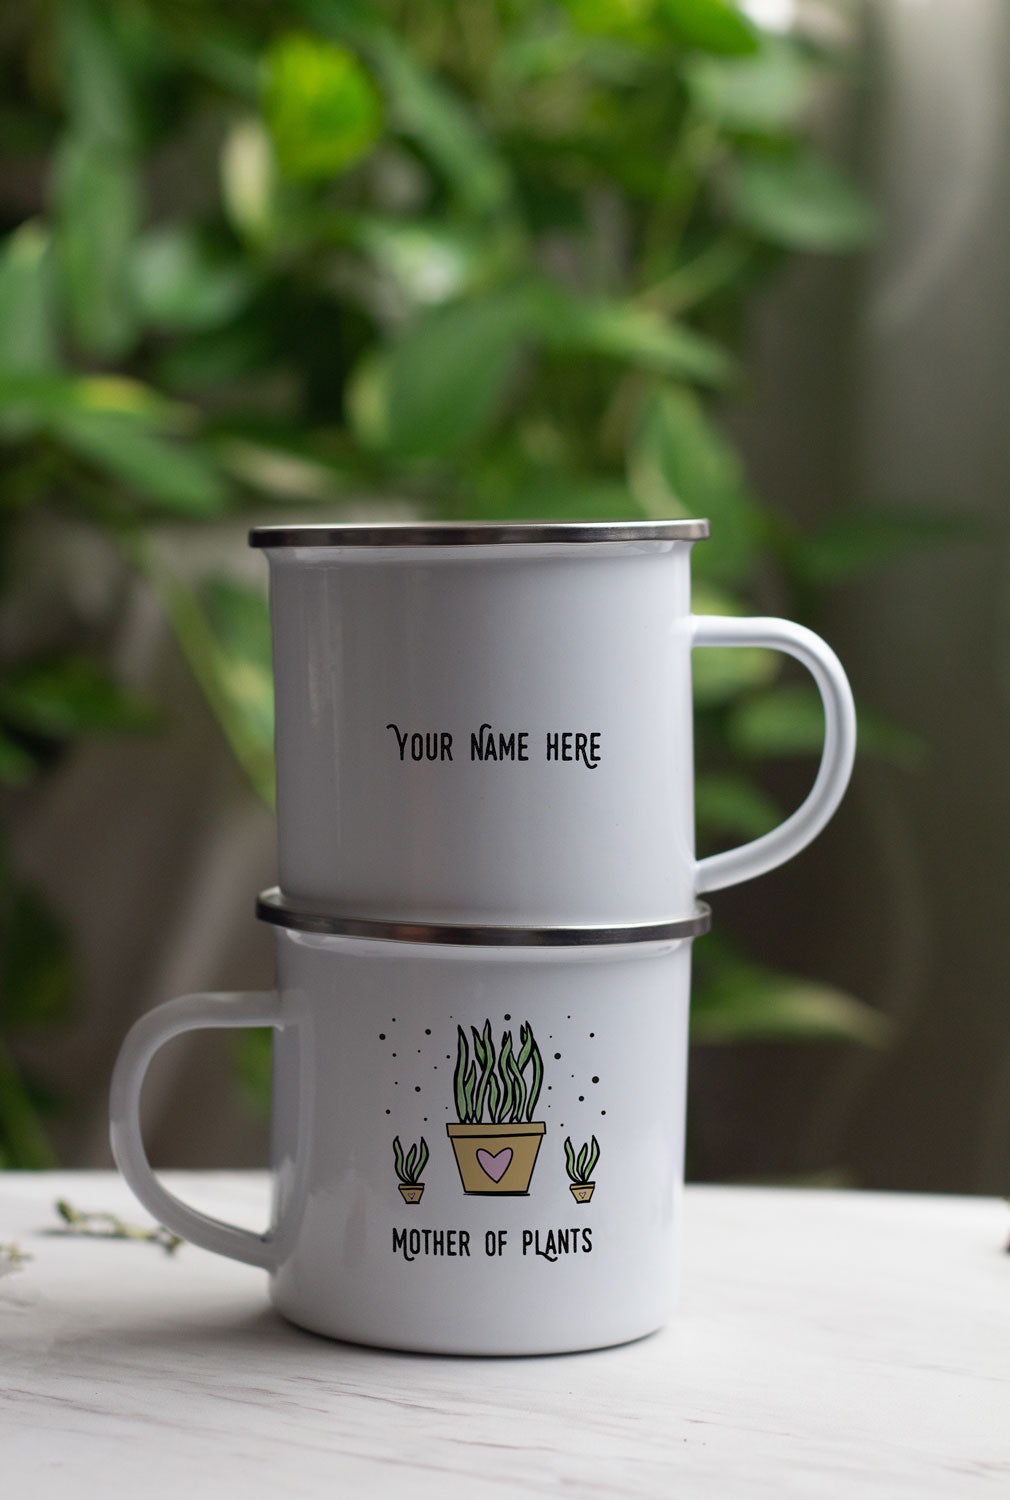 Mother of Plants enamel mug design